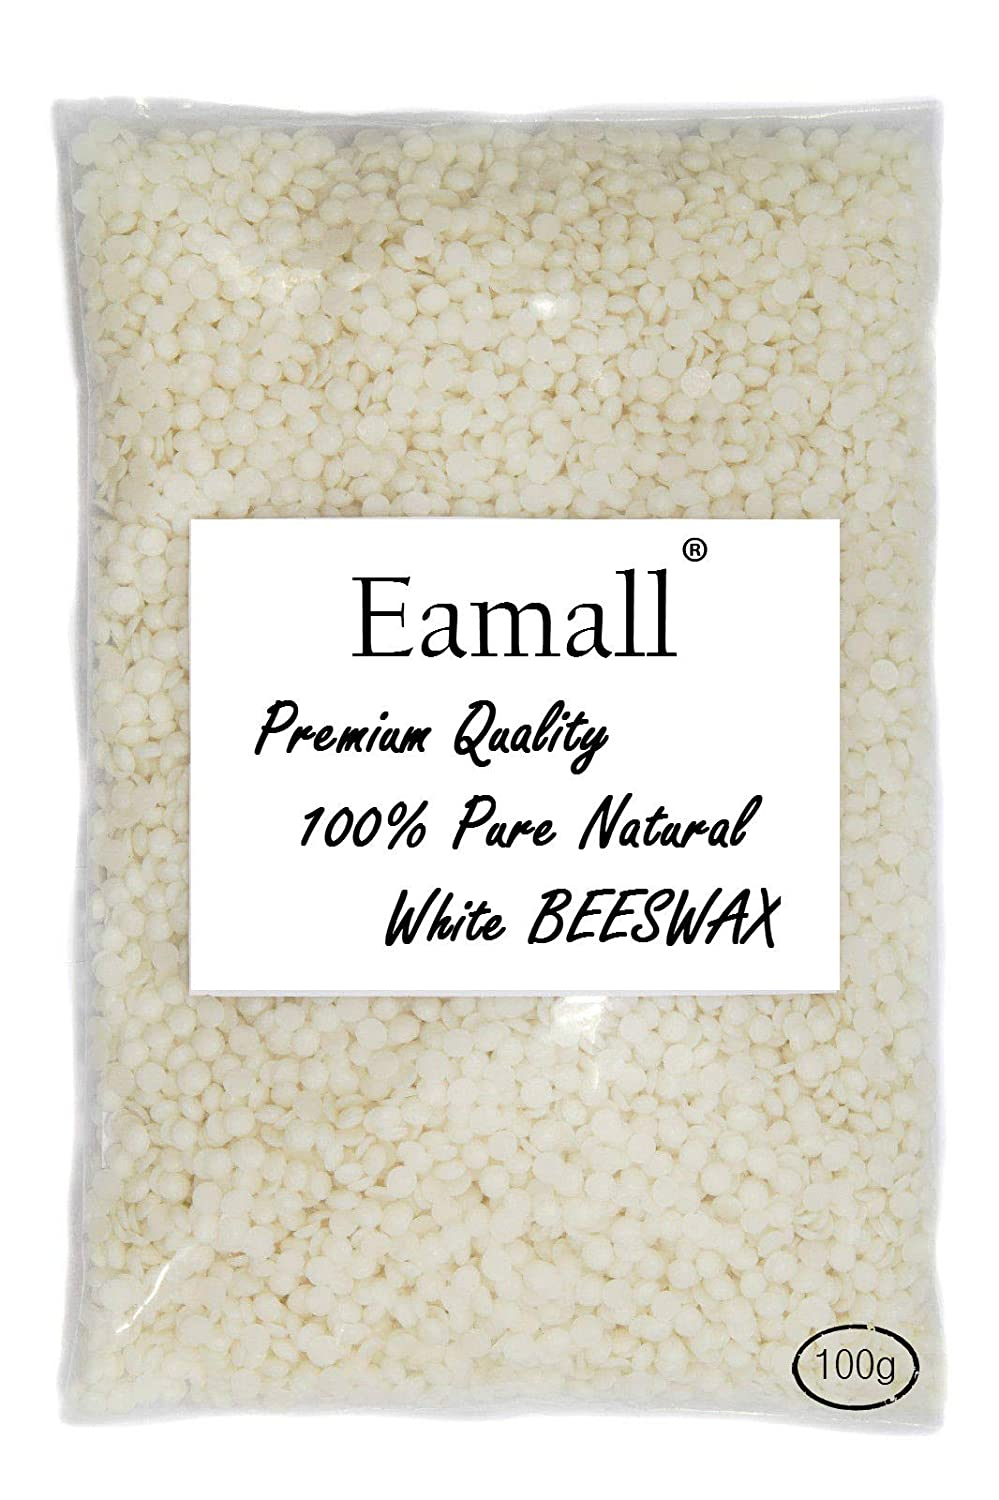 White Beeswax Pellets-100% Pure and Natural, Cosmetic Grade by Eamall - 300g(in 100g Bags)